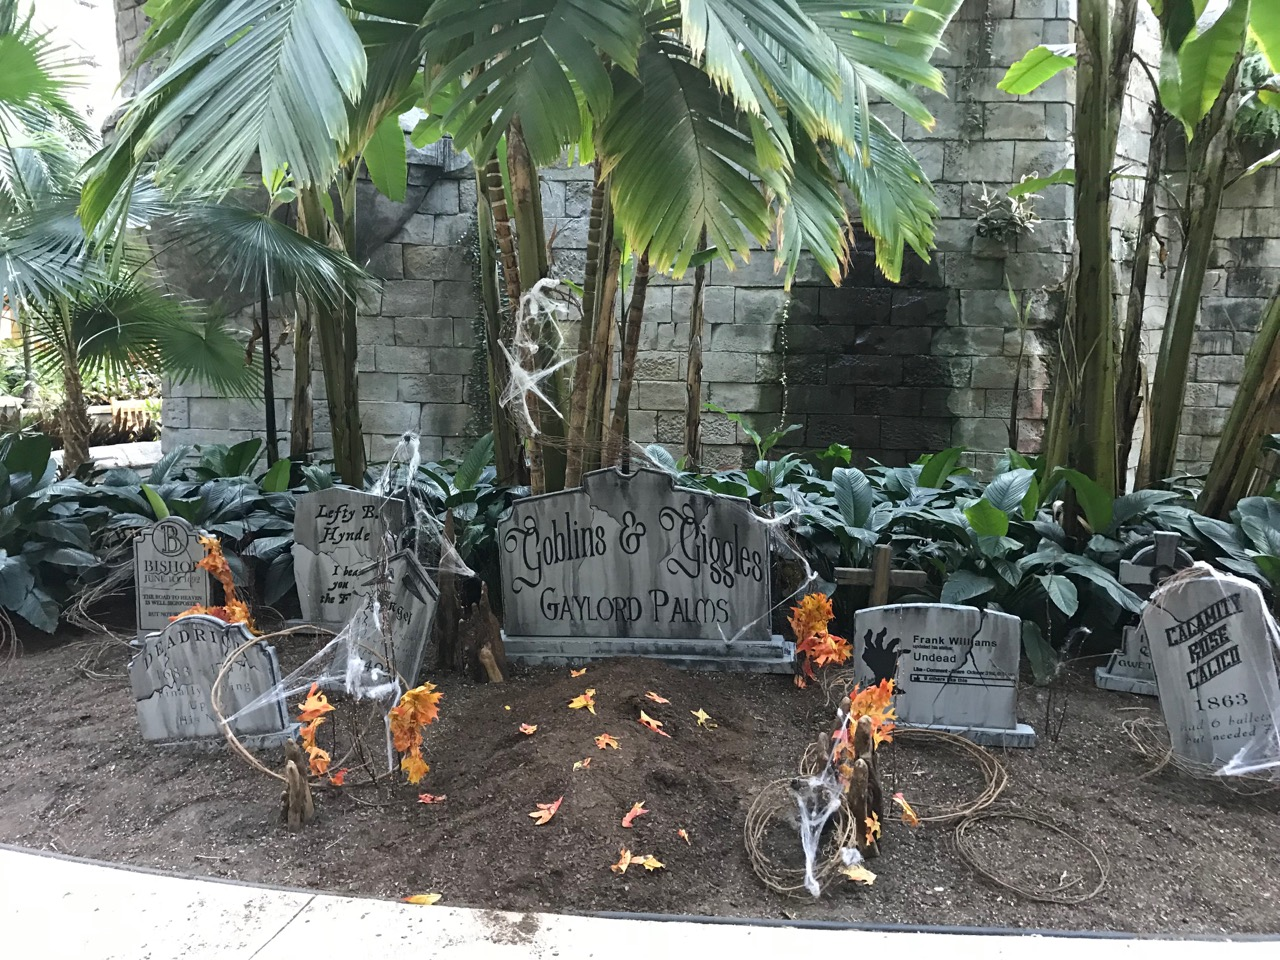 review gaylord palms resort offers frights laughs and family fun